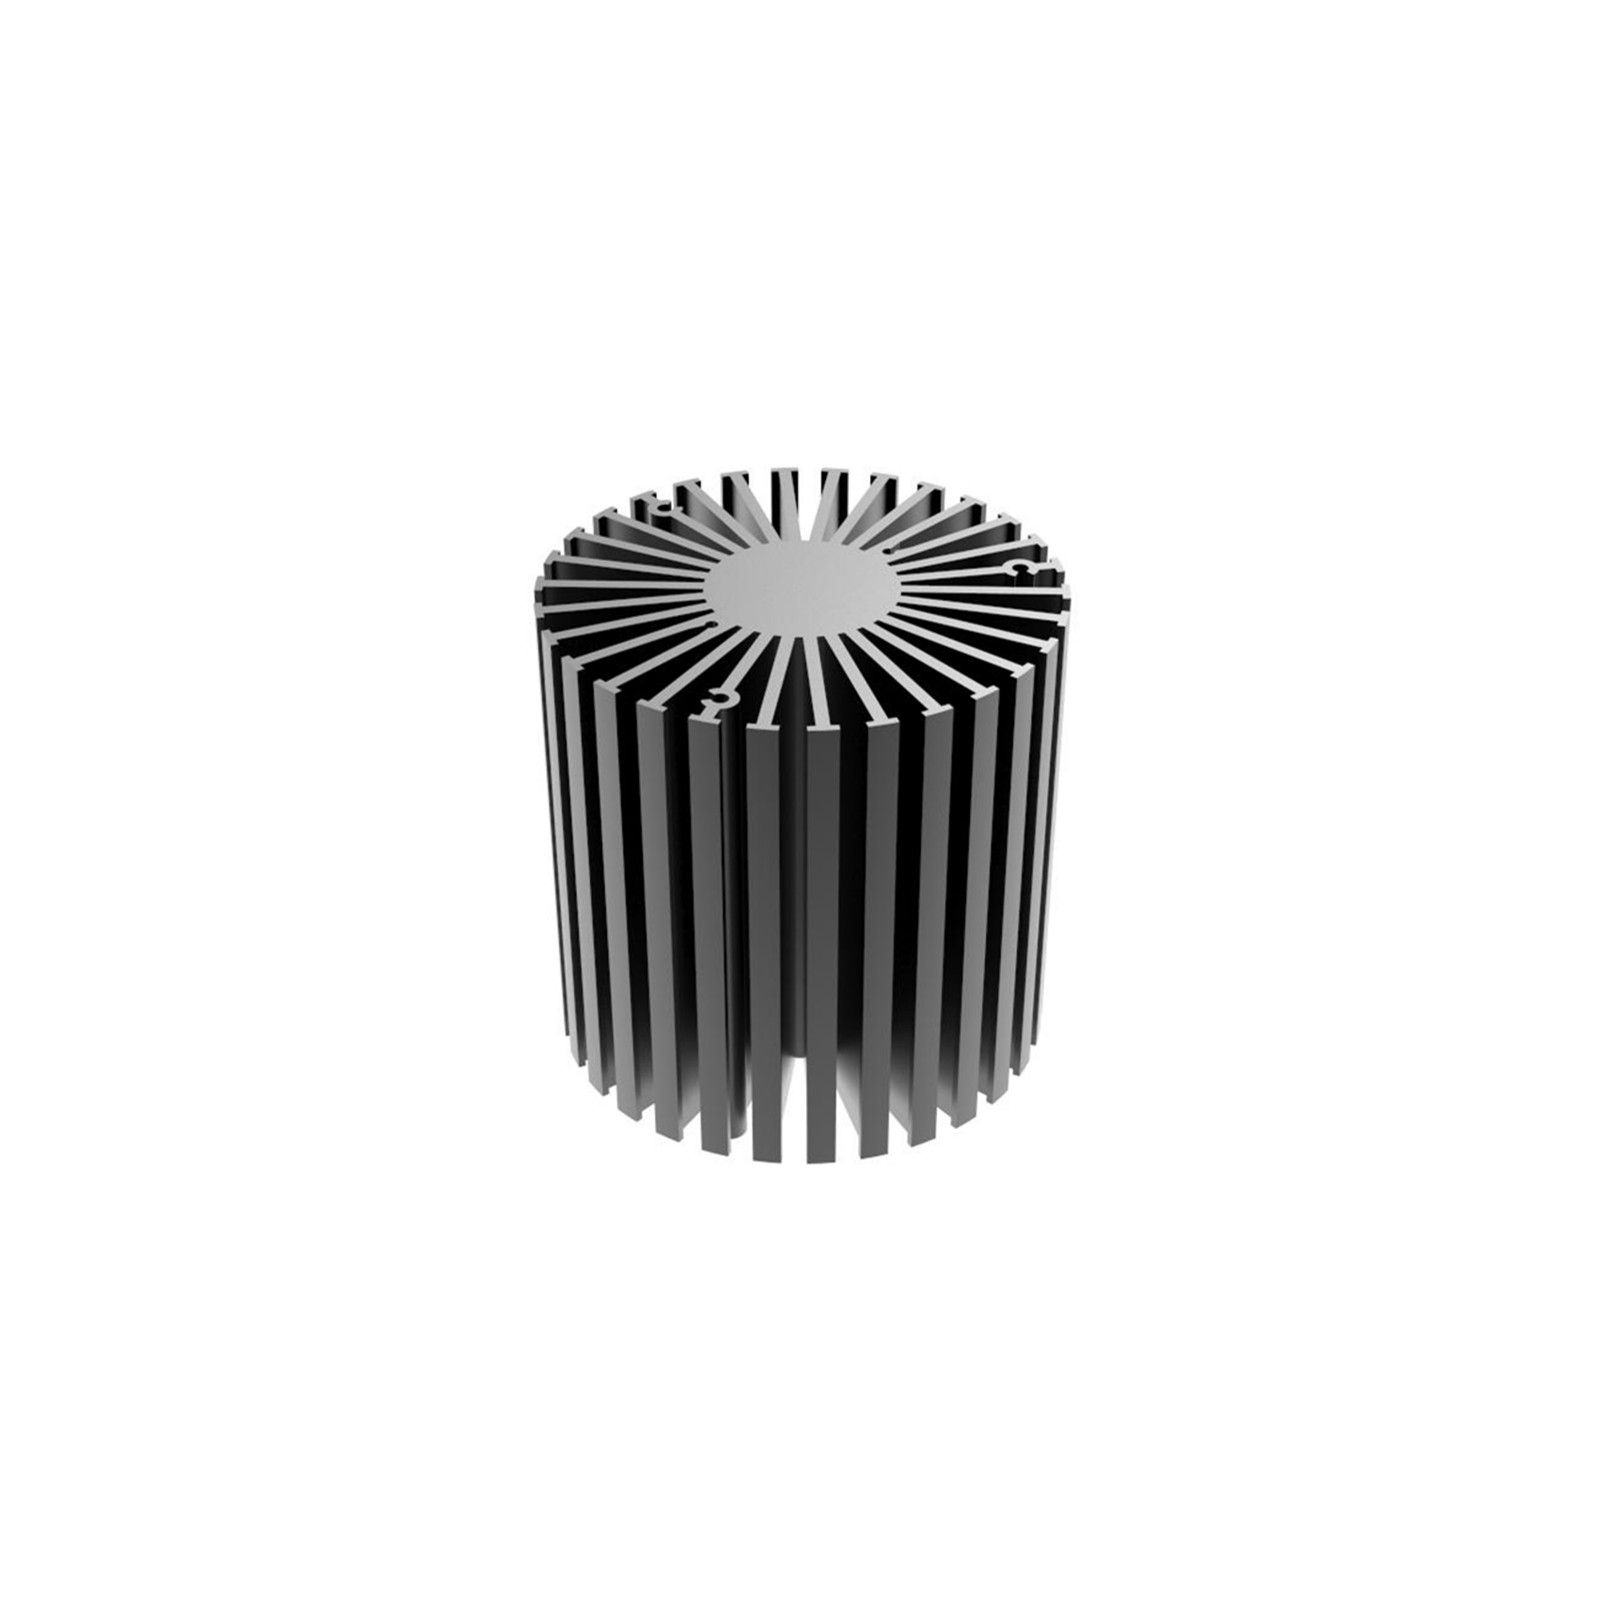 Mingfa Tech dusting mini heatsink supplier for bedroom-4